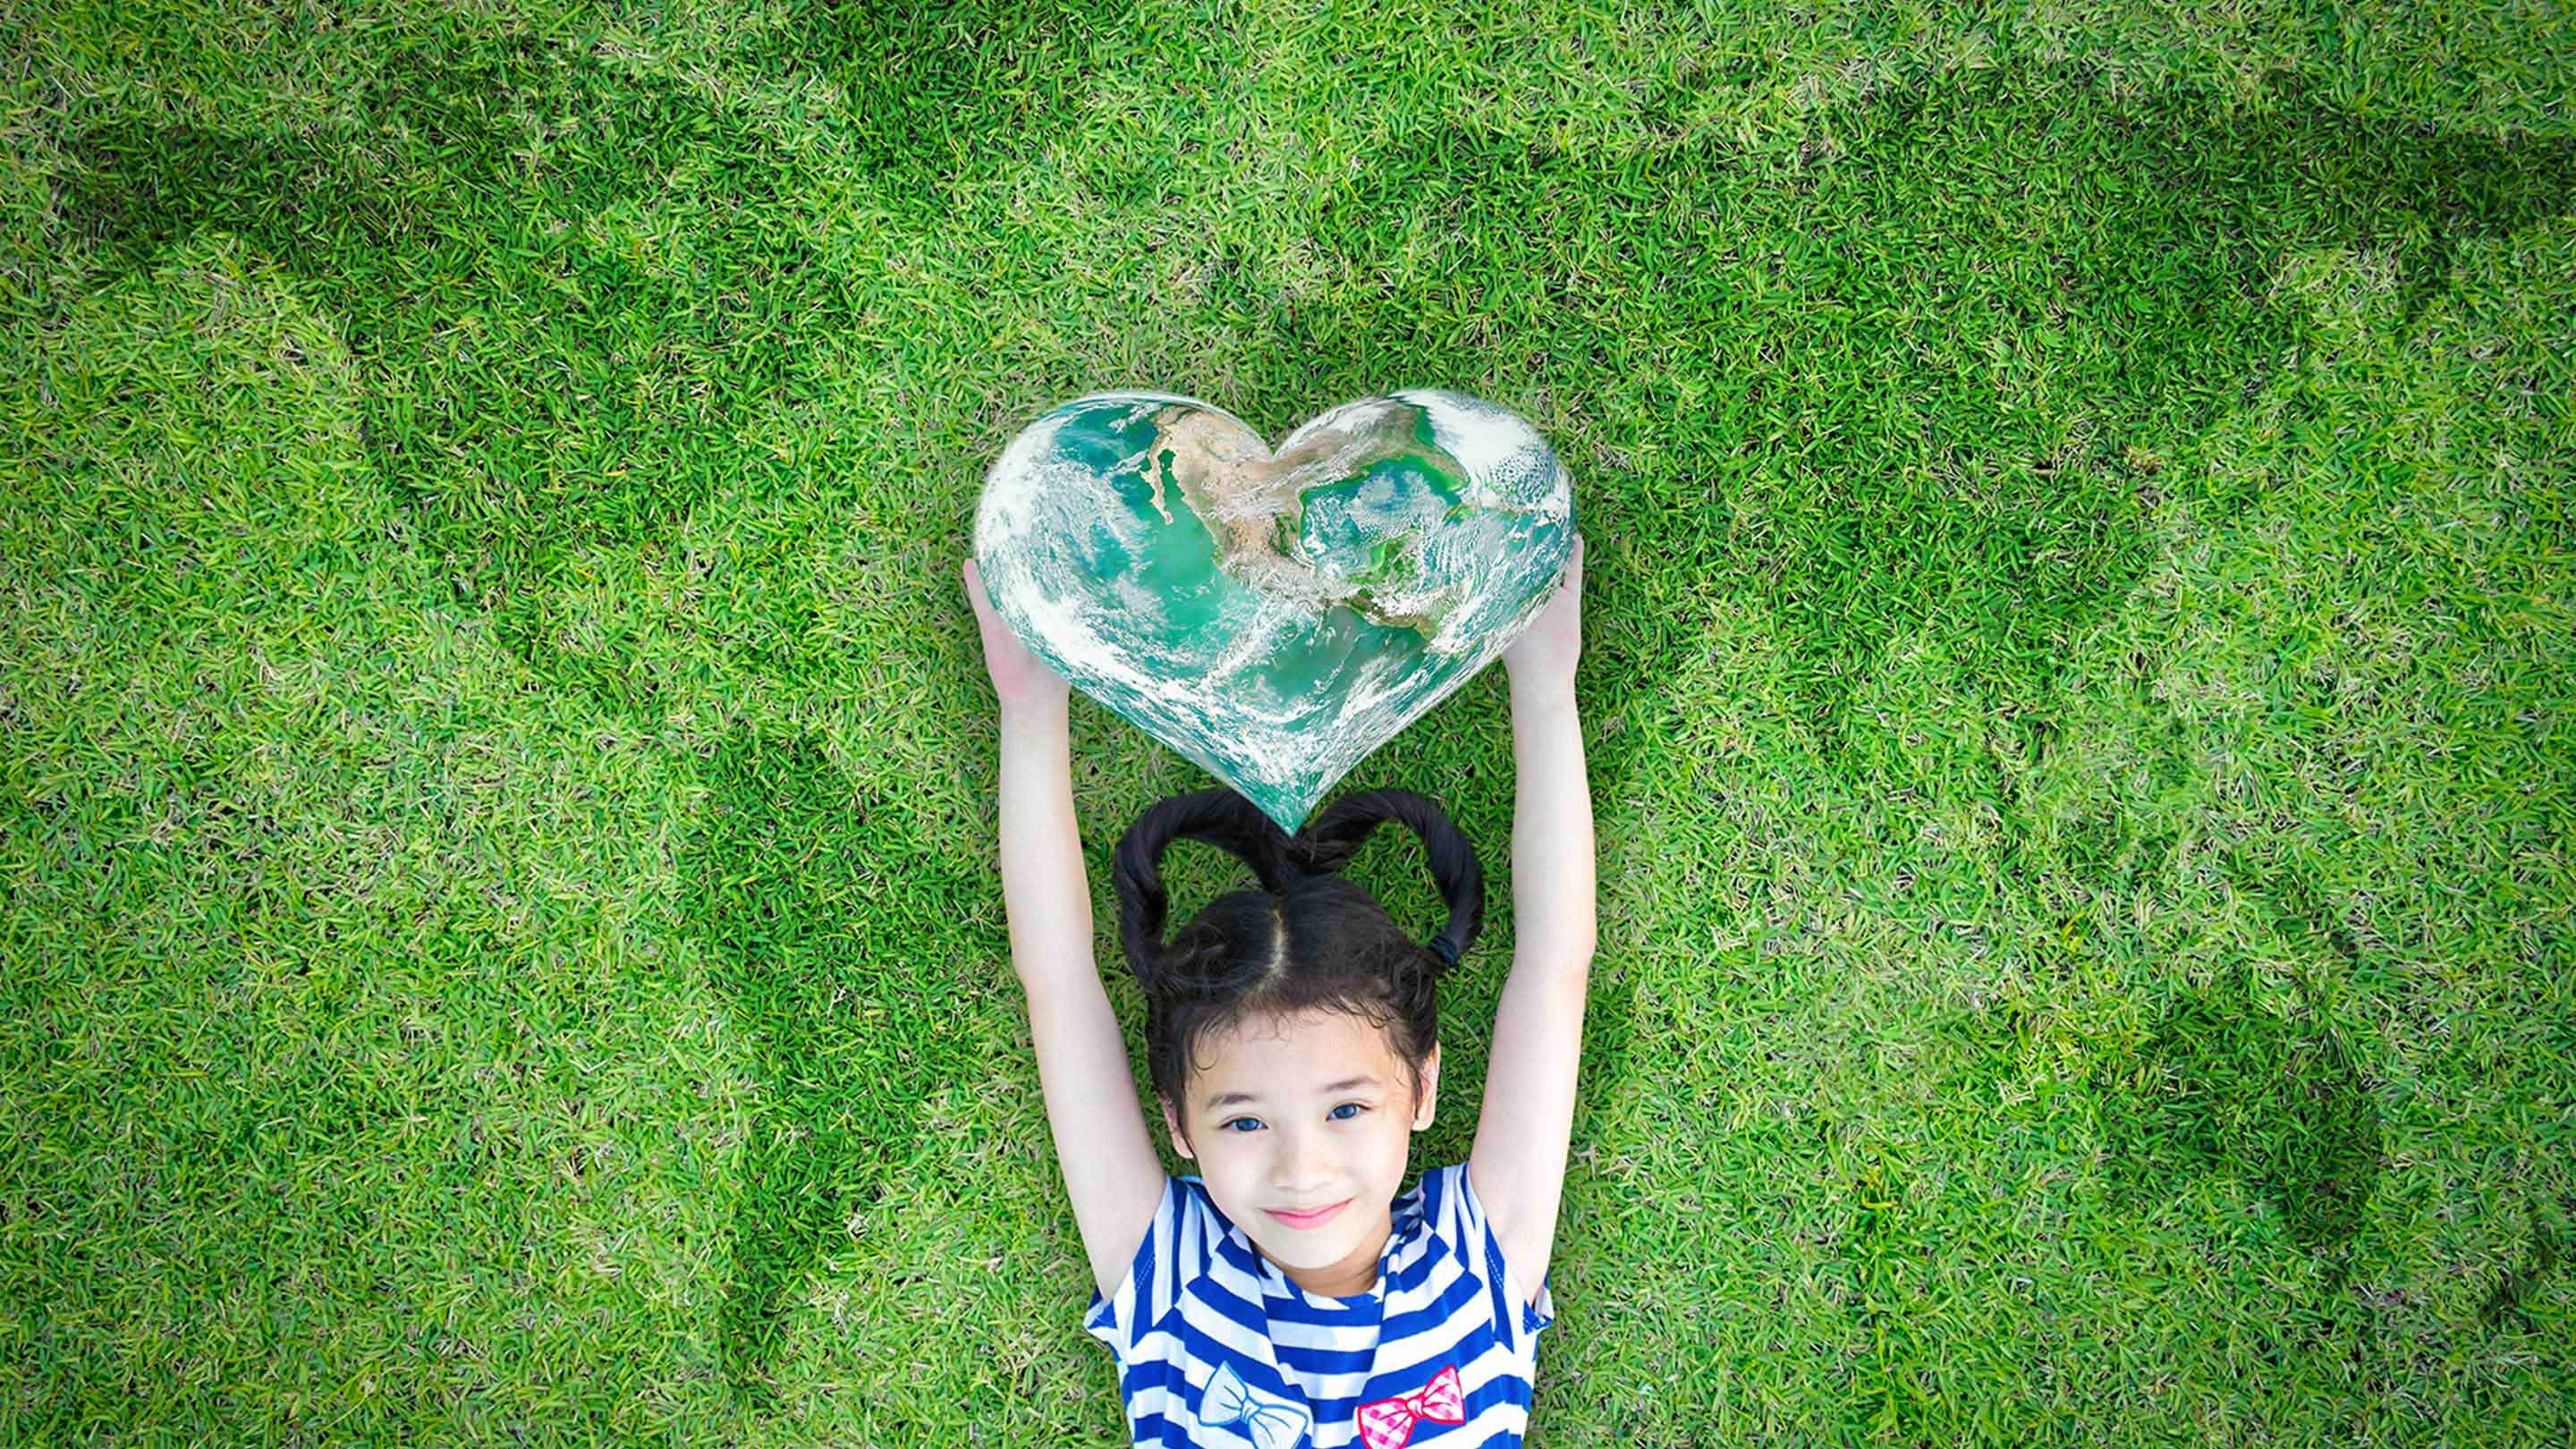 Young girl lying down, smiling, in the grass with heart-shaped globe above her head.